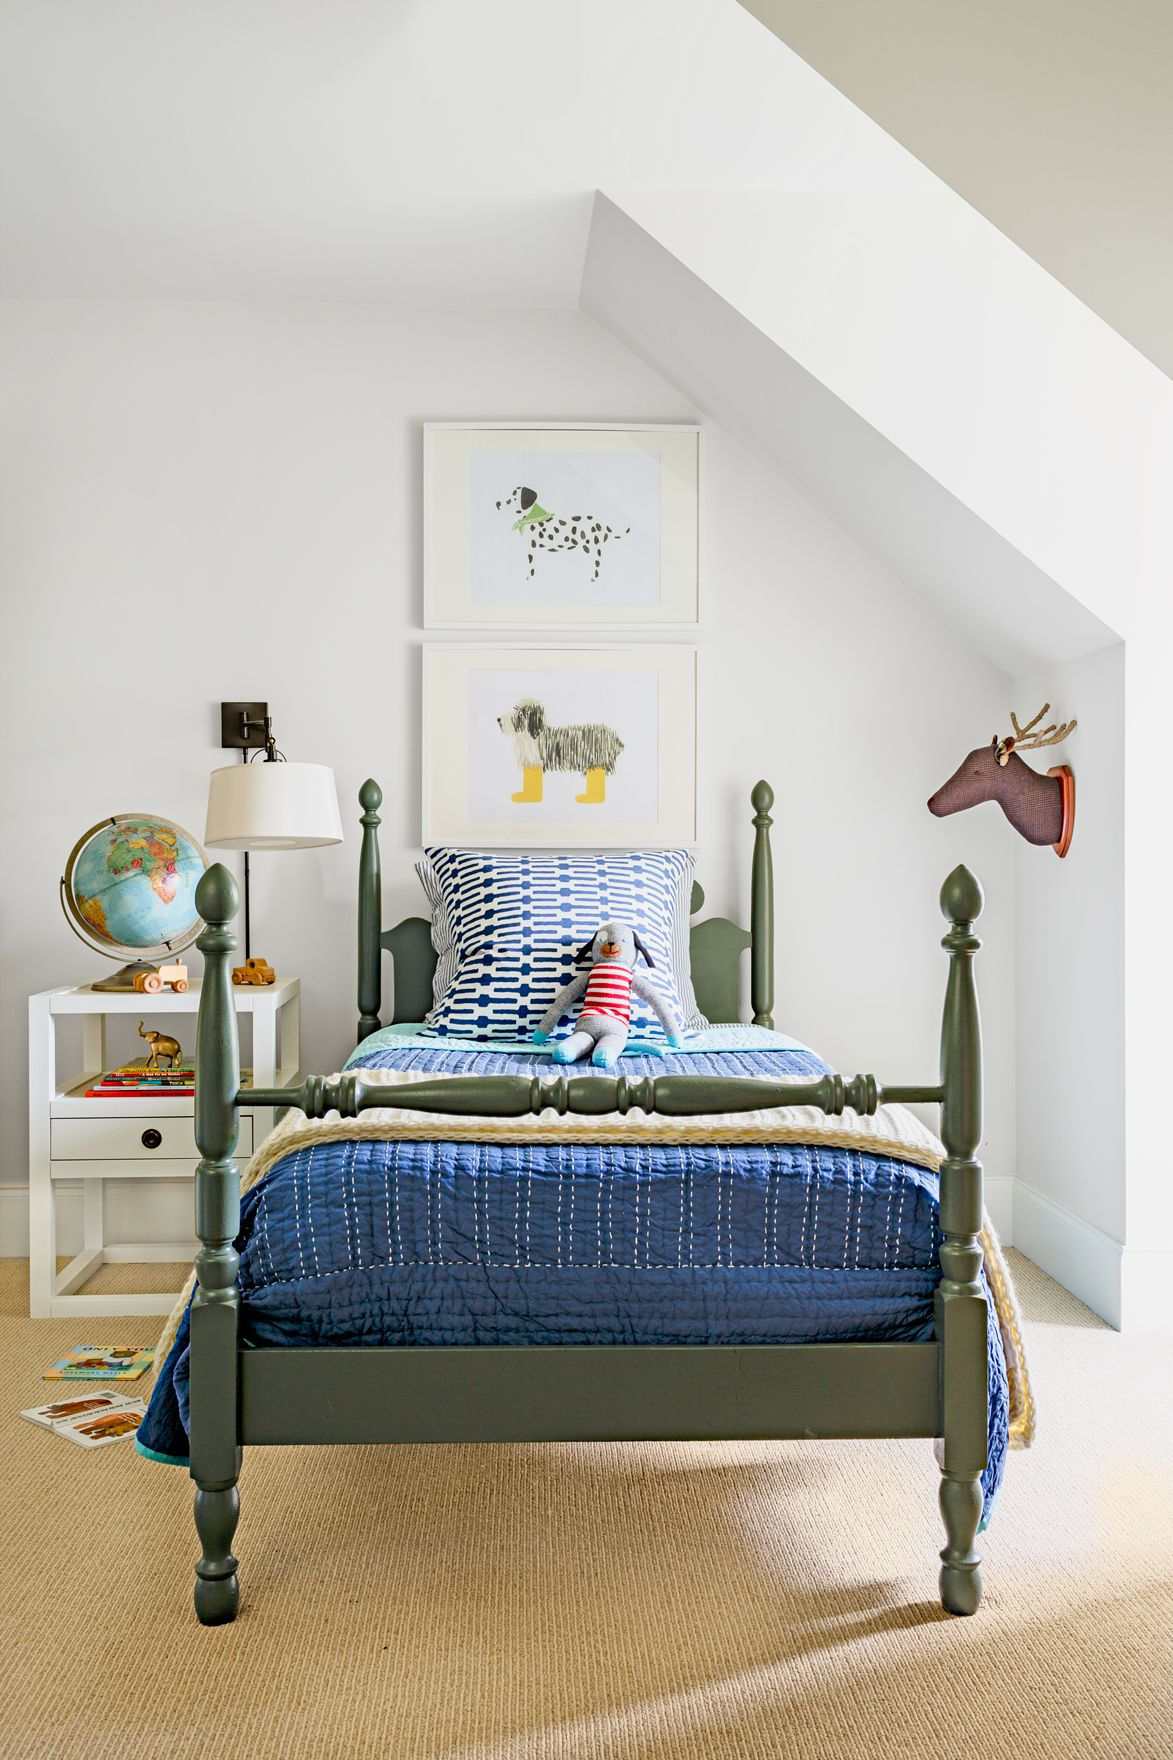 Boys Room Walls 50 Kids Room Decor Ideas Bedroom Design And Decorating For Kids